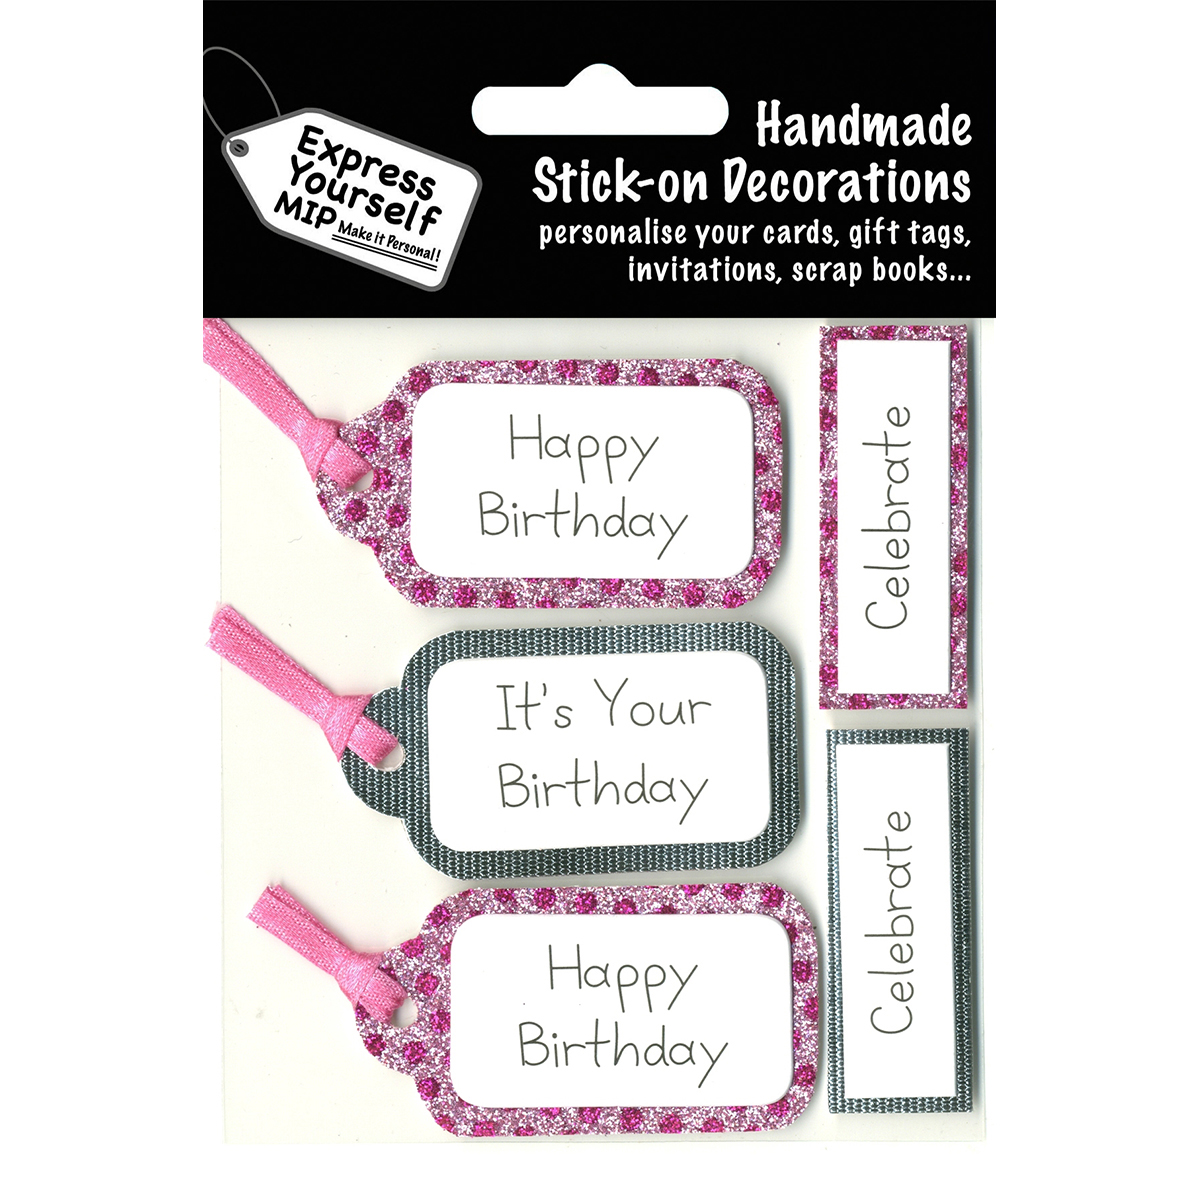 Express Yourself MIP 3D Stickers-Pink & Silver Banners